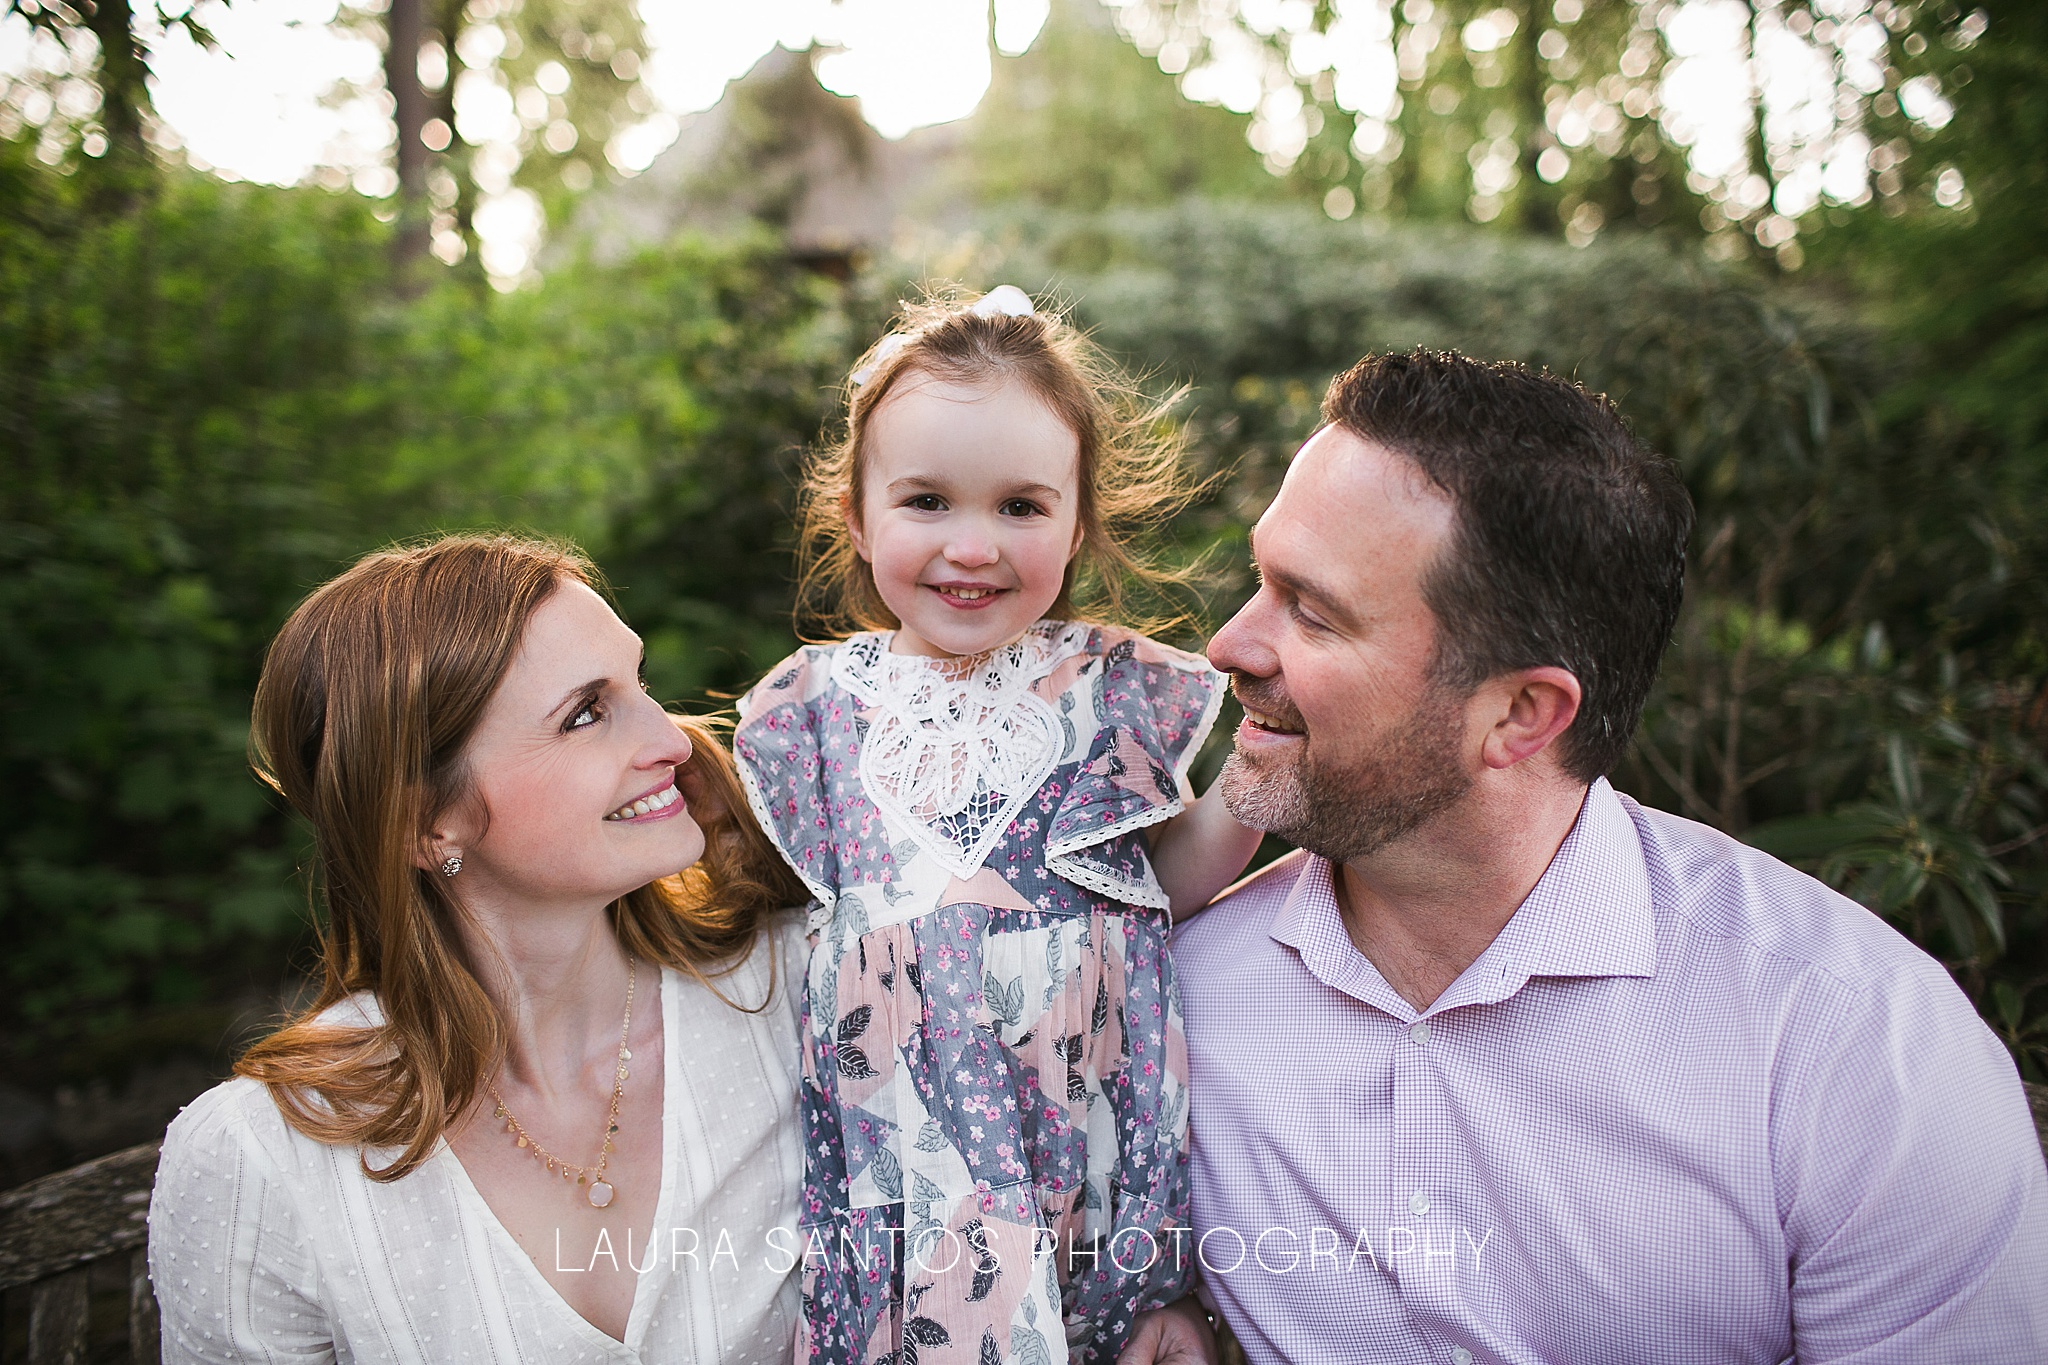 Laura Santos Photography Portland Oregon Family Photographer_0928.jpg